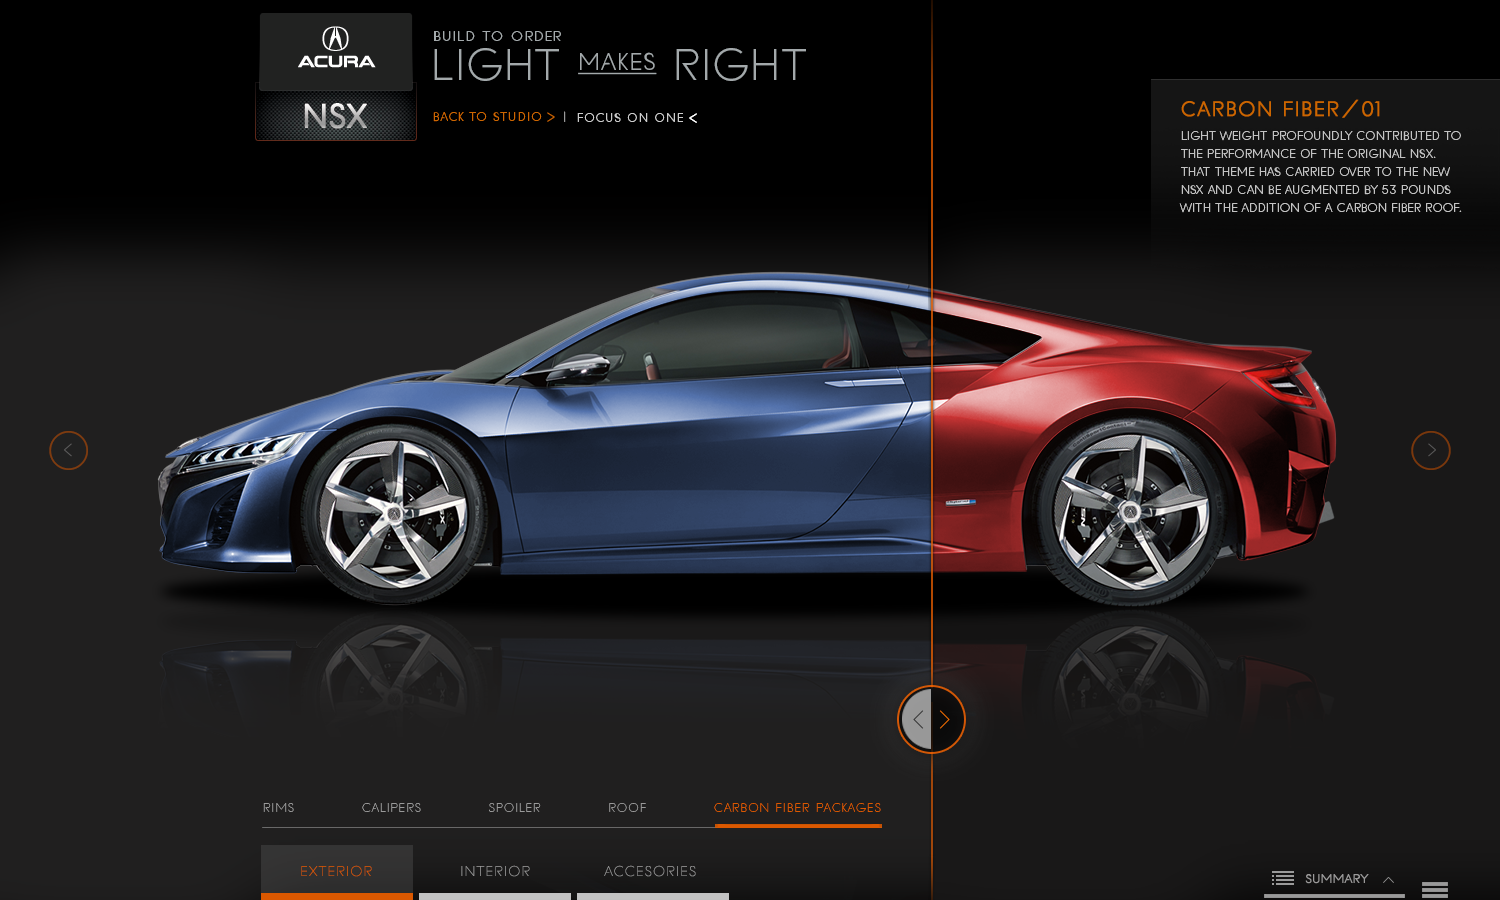 Acura_NSX_BTO_Concept_27.png